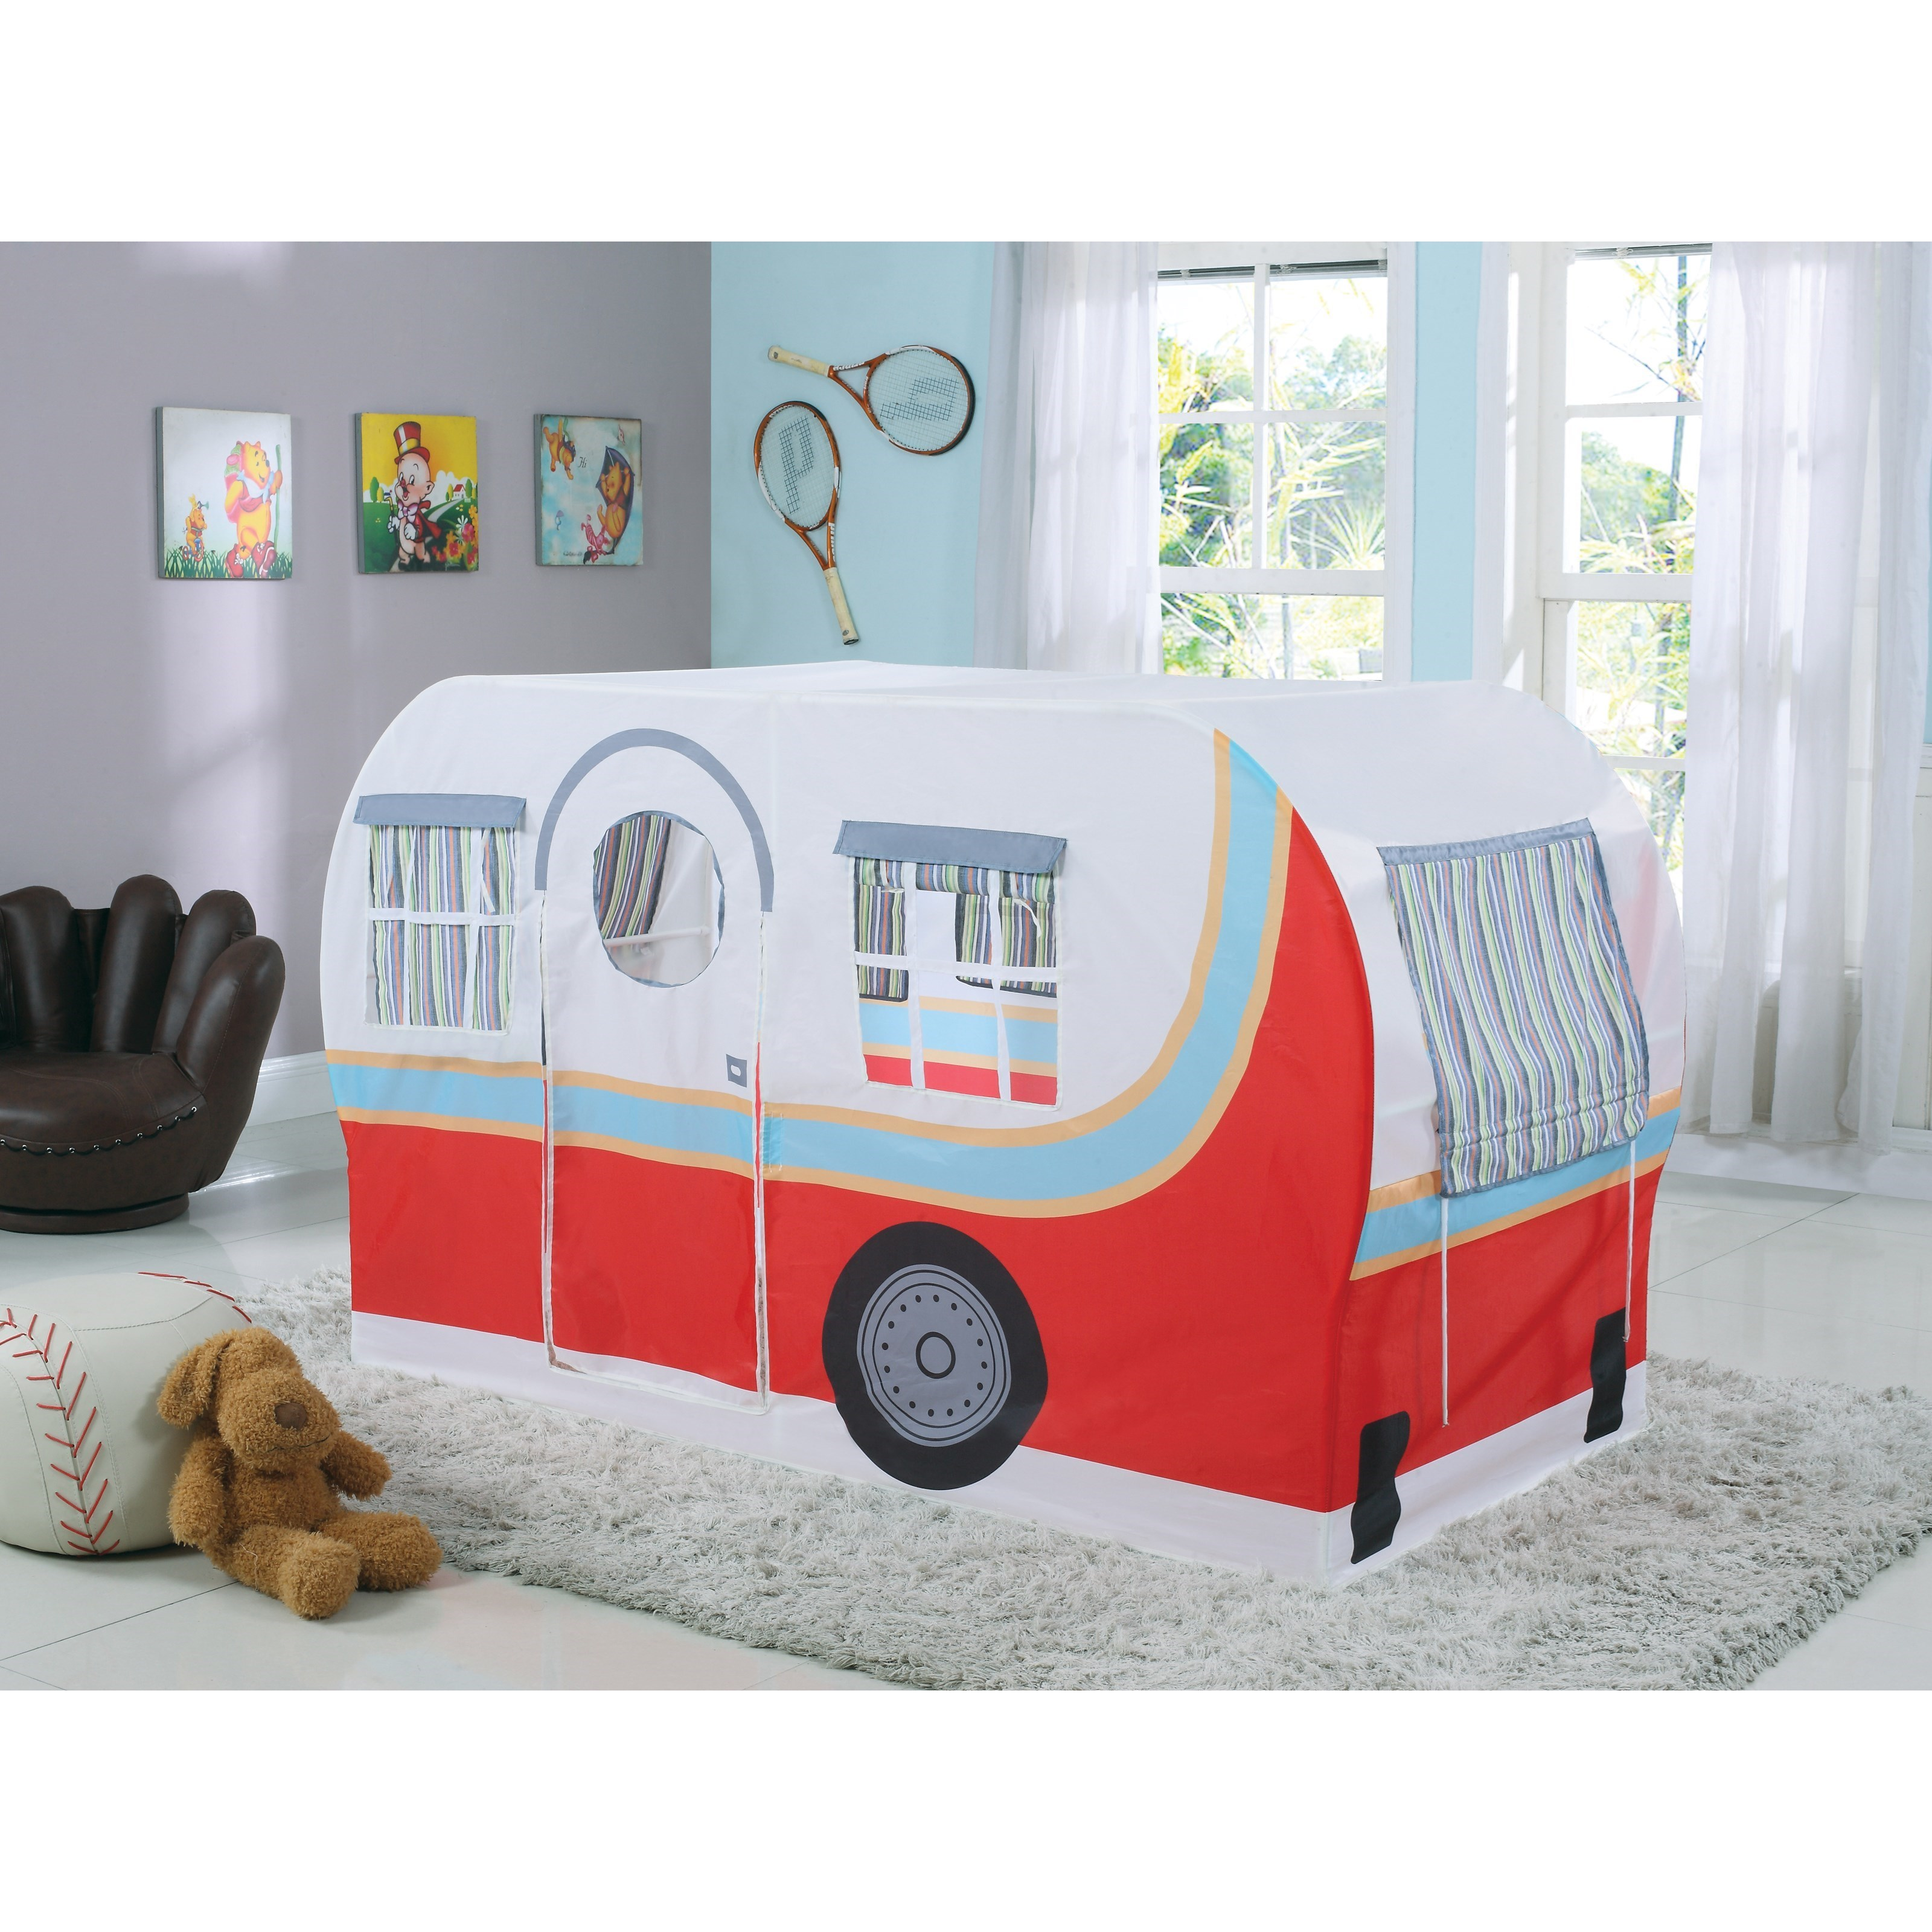 sets soft elegant toddler youth girly ideas size house calm decoration ikea kids bunk with bedroom desk drawer simple feminine for cute storage full bed sliding wooden design beds boy best cheerful